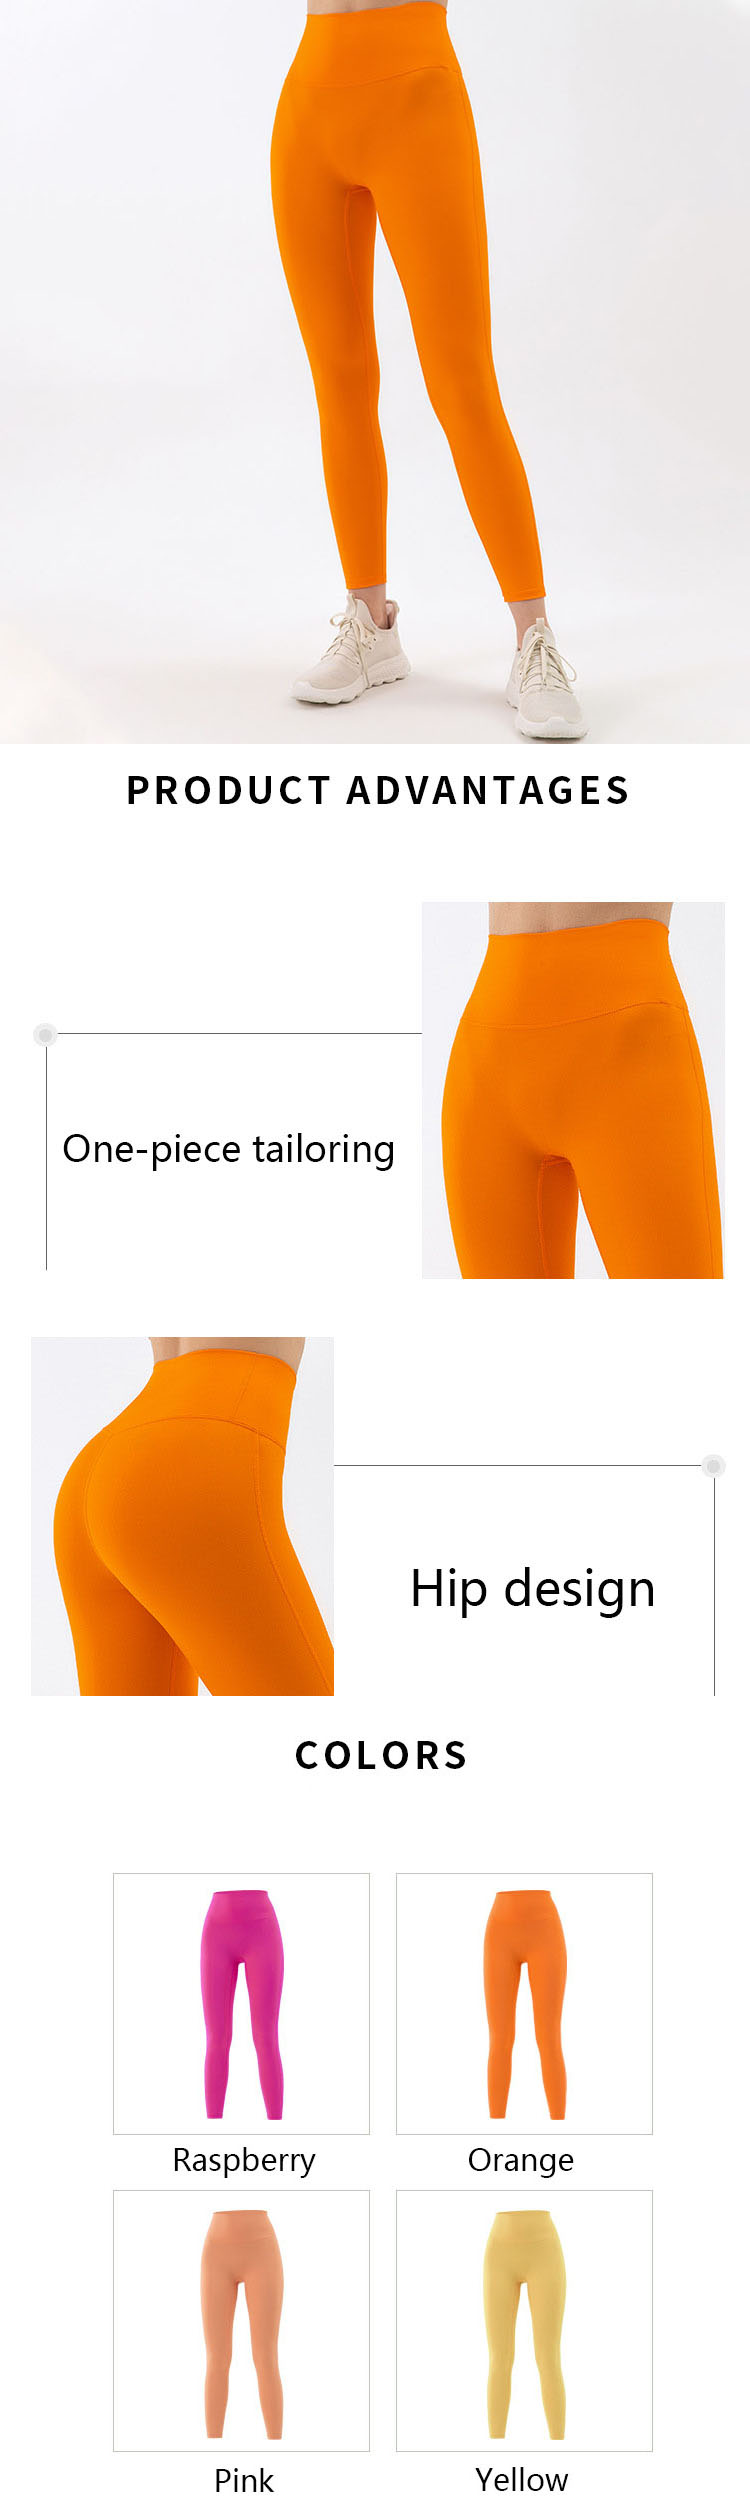 The use of structure is the top priority of orange yoga pants design